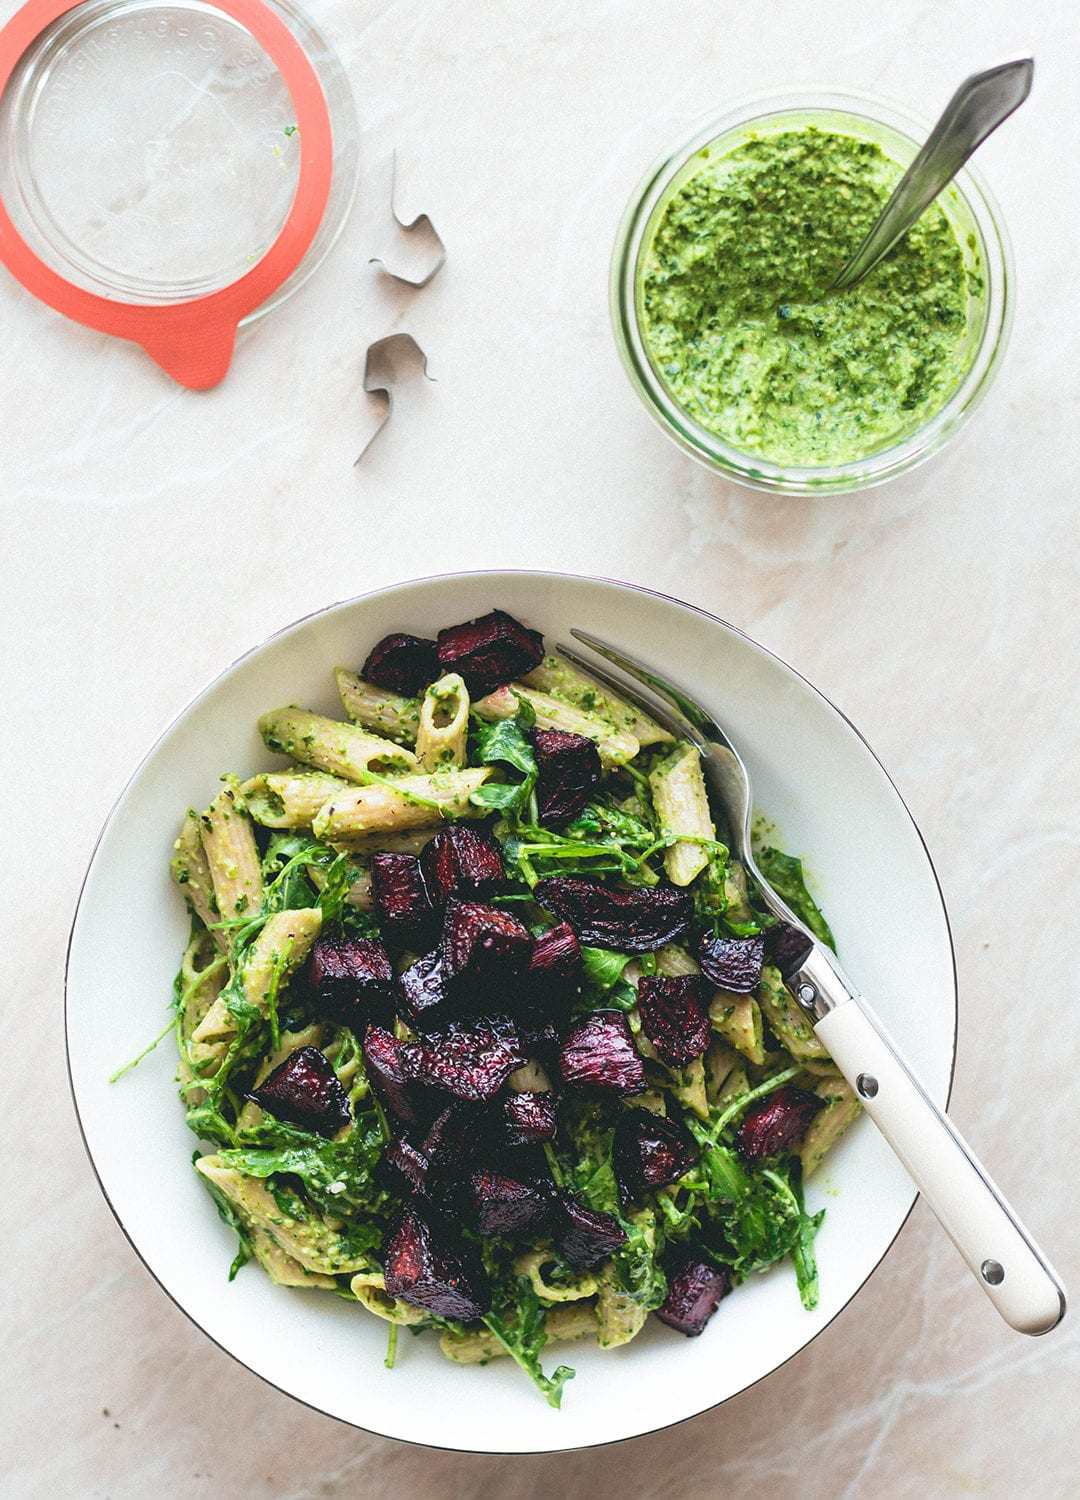 Arugula Basil Pesto Pasta (vegan, gf) - delicious garden pesto served with gluten-free brown rice pasta and easy to make roasted beets. Delicious and easy pasta recipe! | thehealthfulideas.com